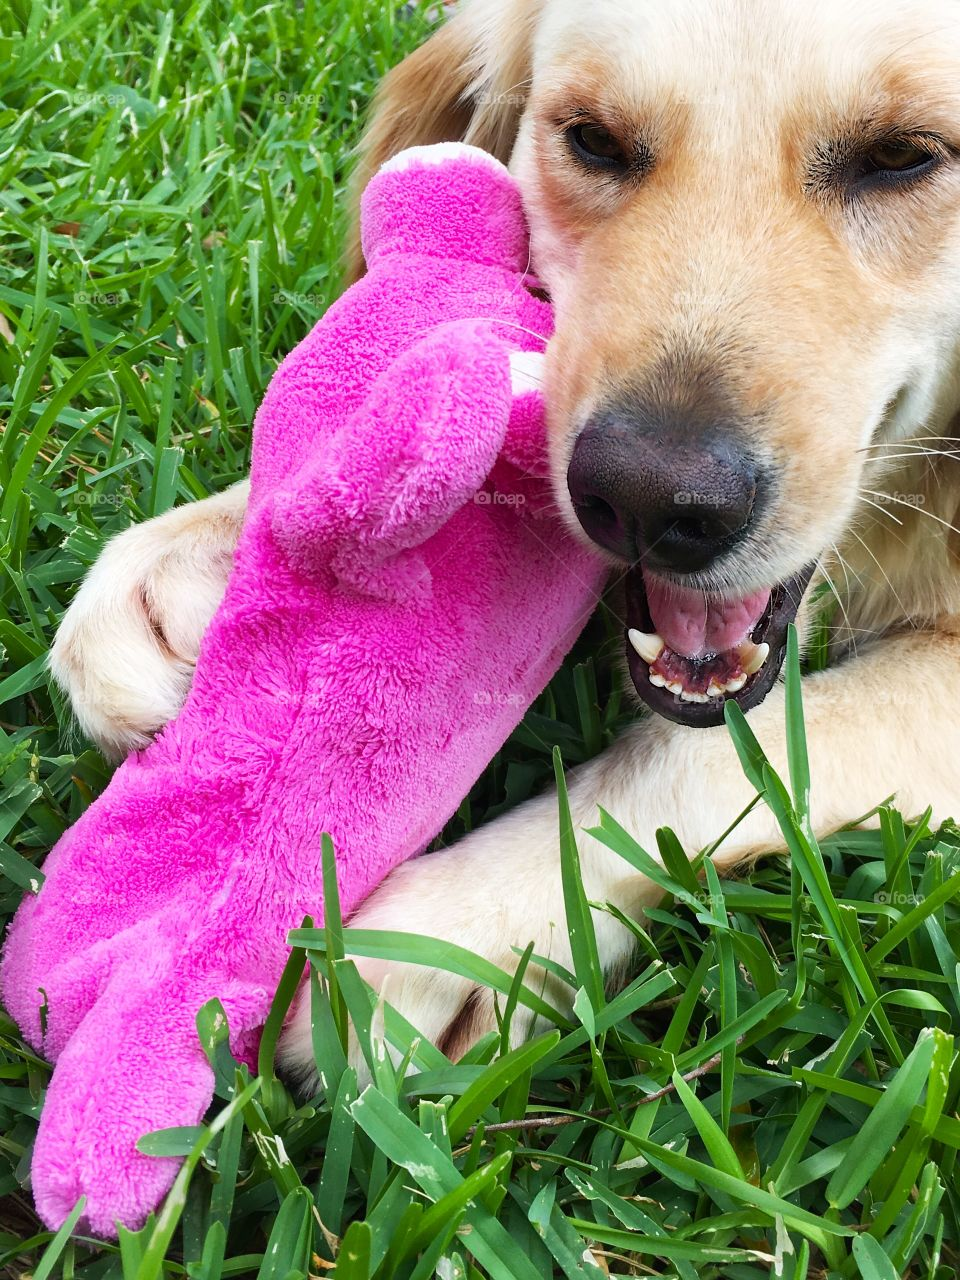 Puppy and pink toy